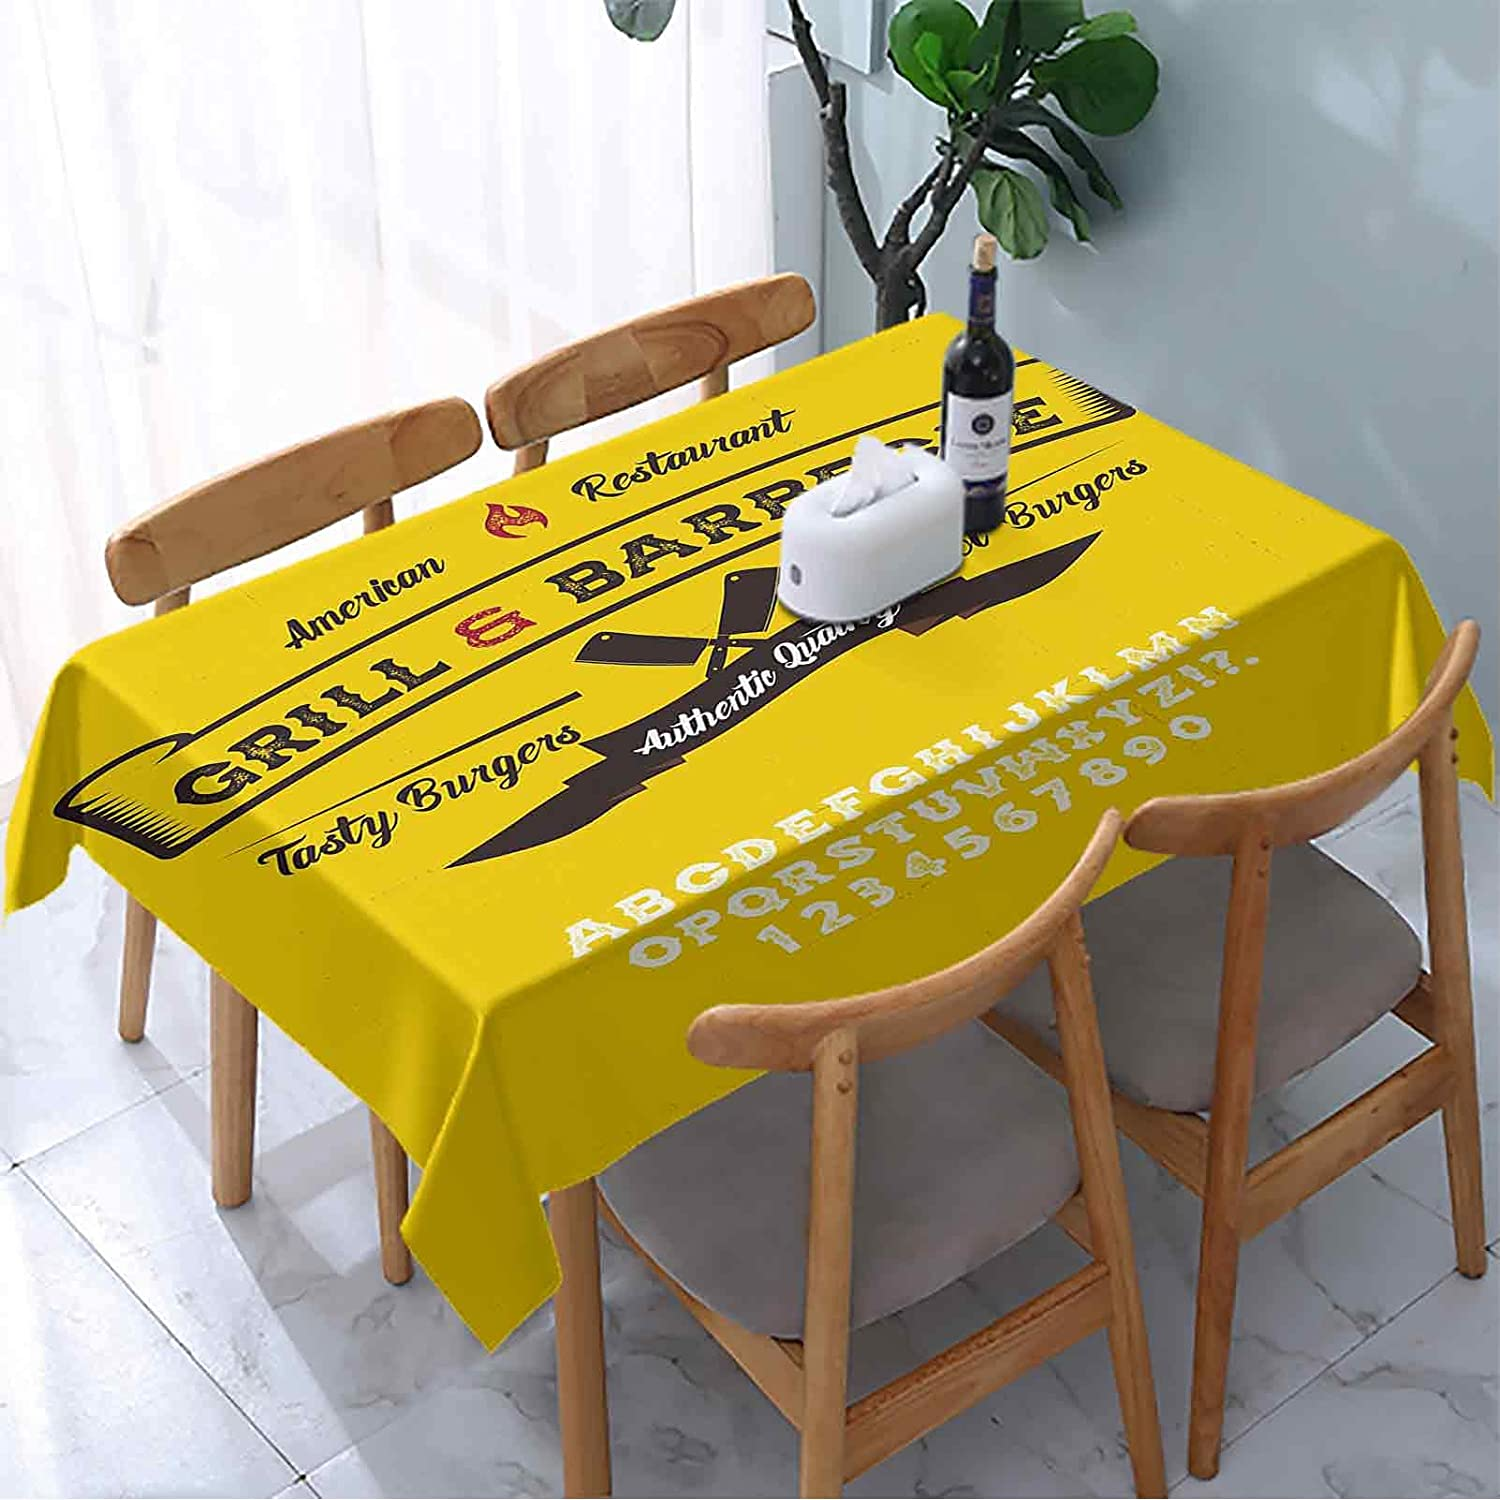 Textura Rectangle Table Cloth Popular brand Hand Font Custom Handw Quality inspection Grill Made